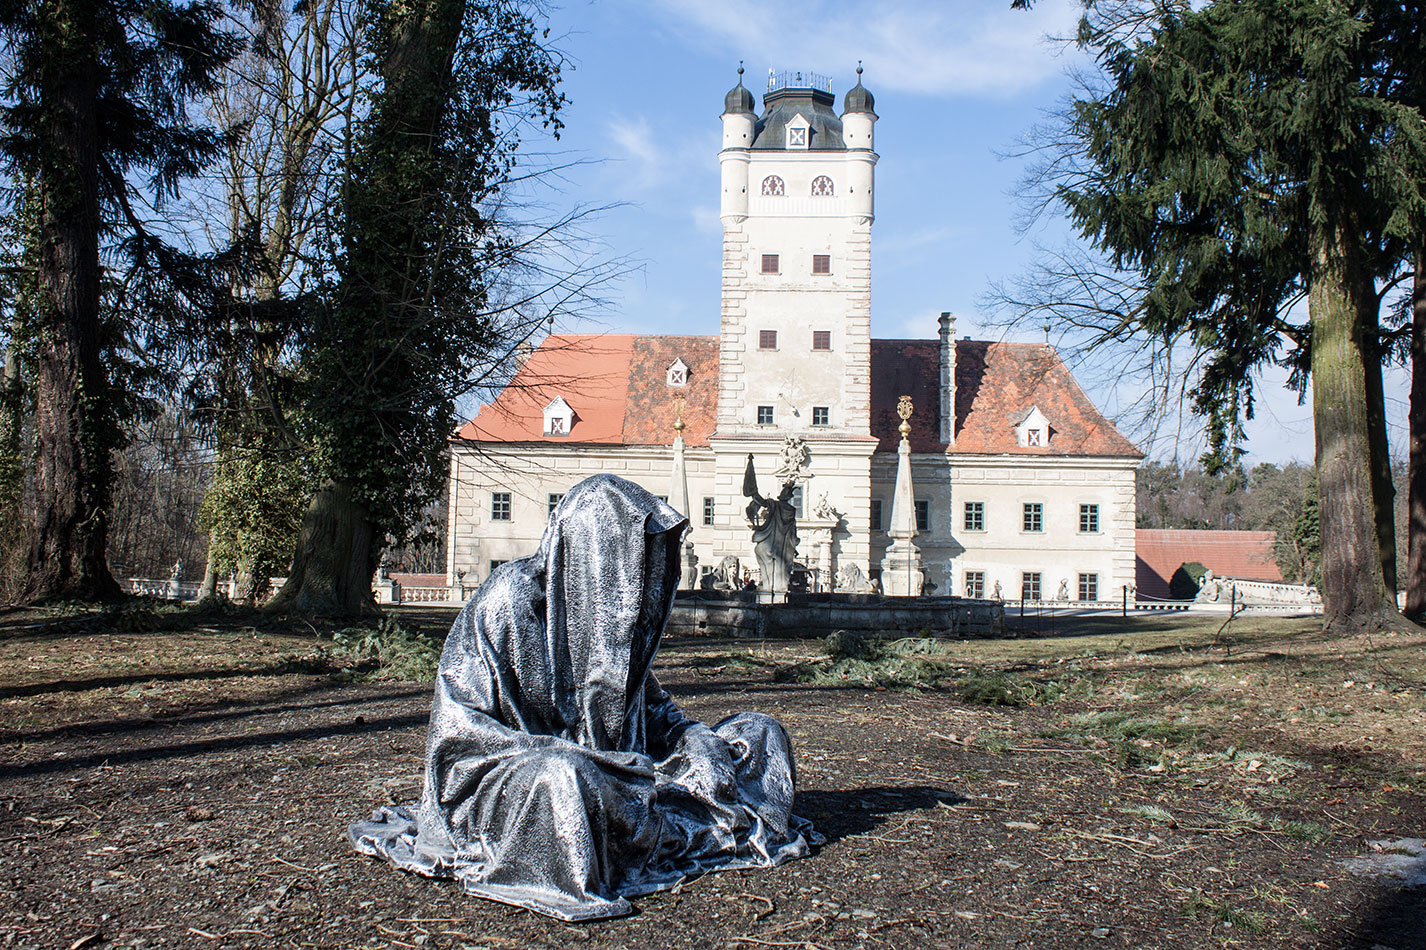 castle-schloss-greilenstein-lower-austriar-waldviertel-guardians-of-time-contemporary-art-sculpture-design-antique-manfred-kili-kielnhofer-7472